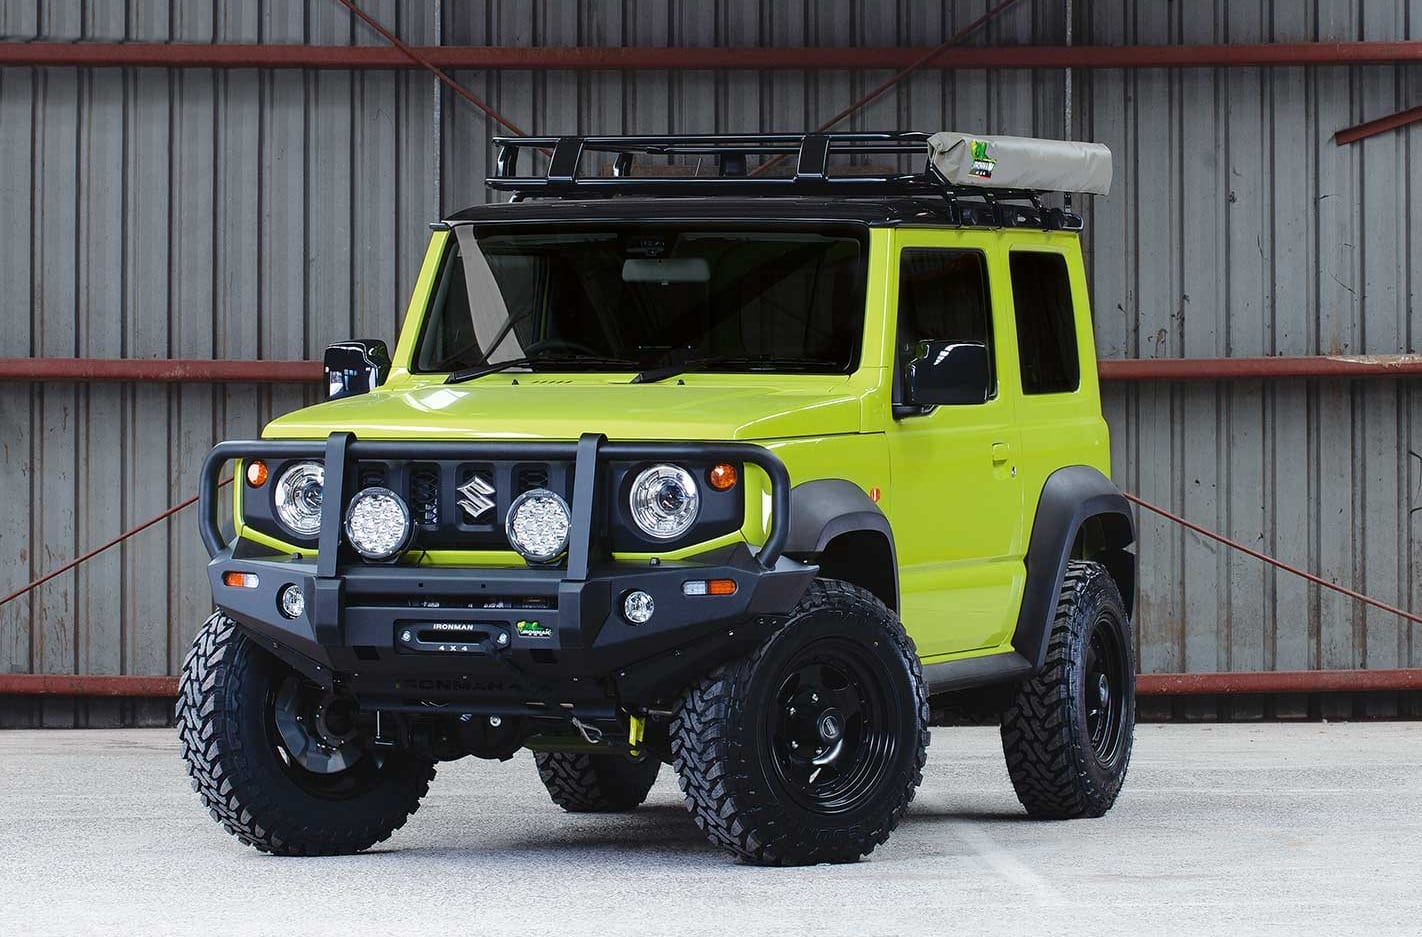 Ironman 4x4 releases GVM upgrade suspension kit for Jimny